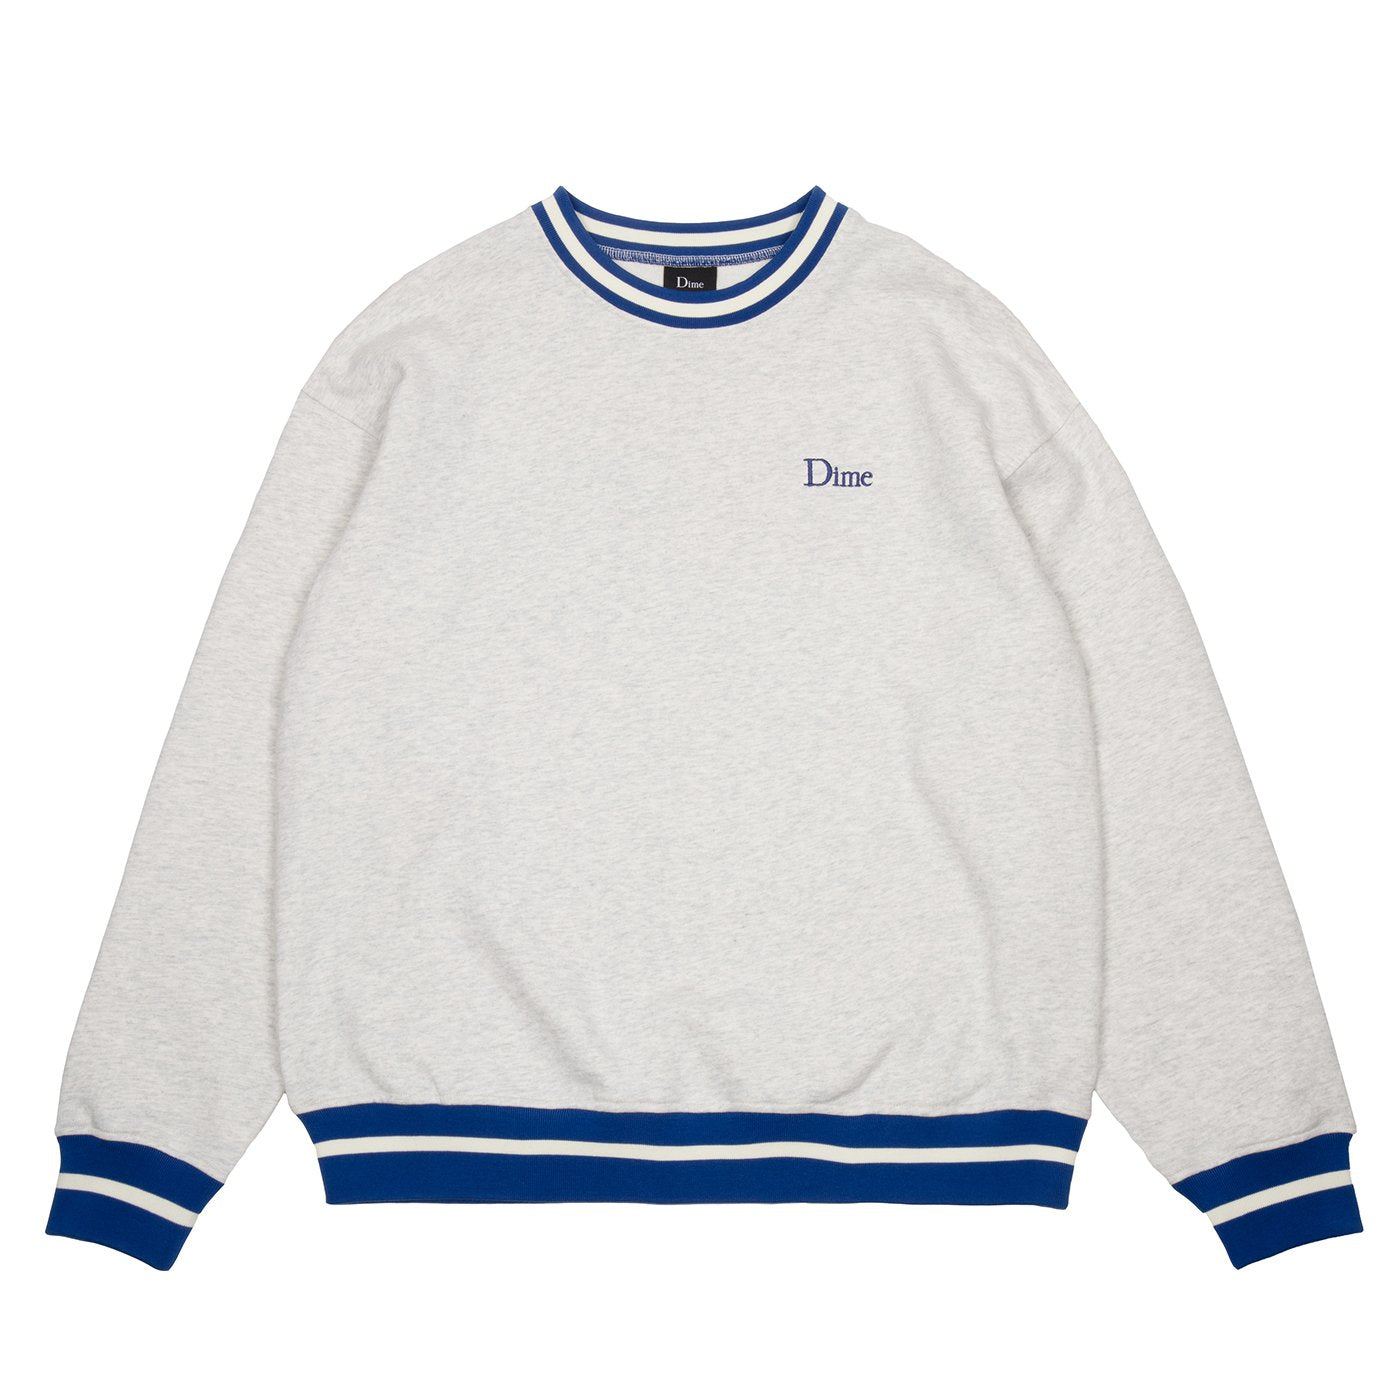 Dime Classic French Terry Crewneck Product Photo #1